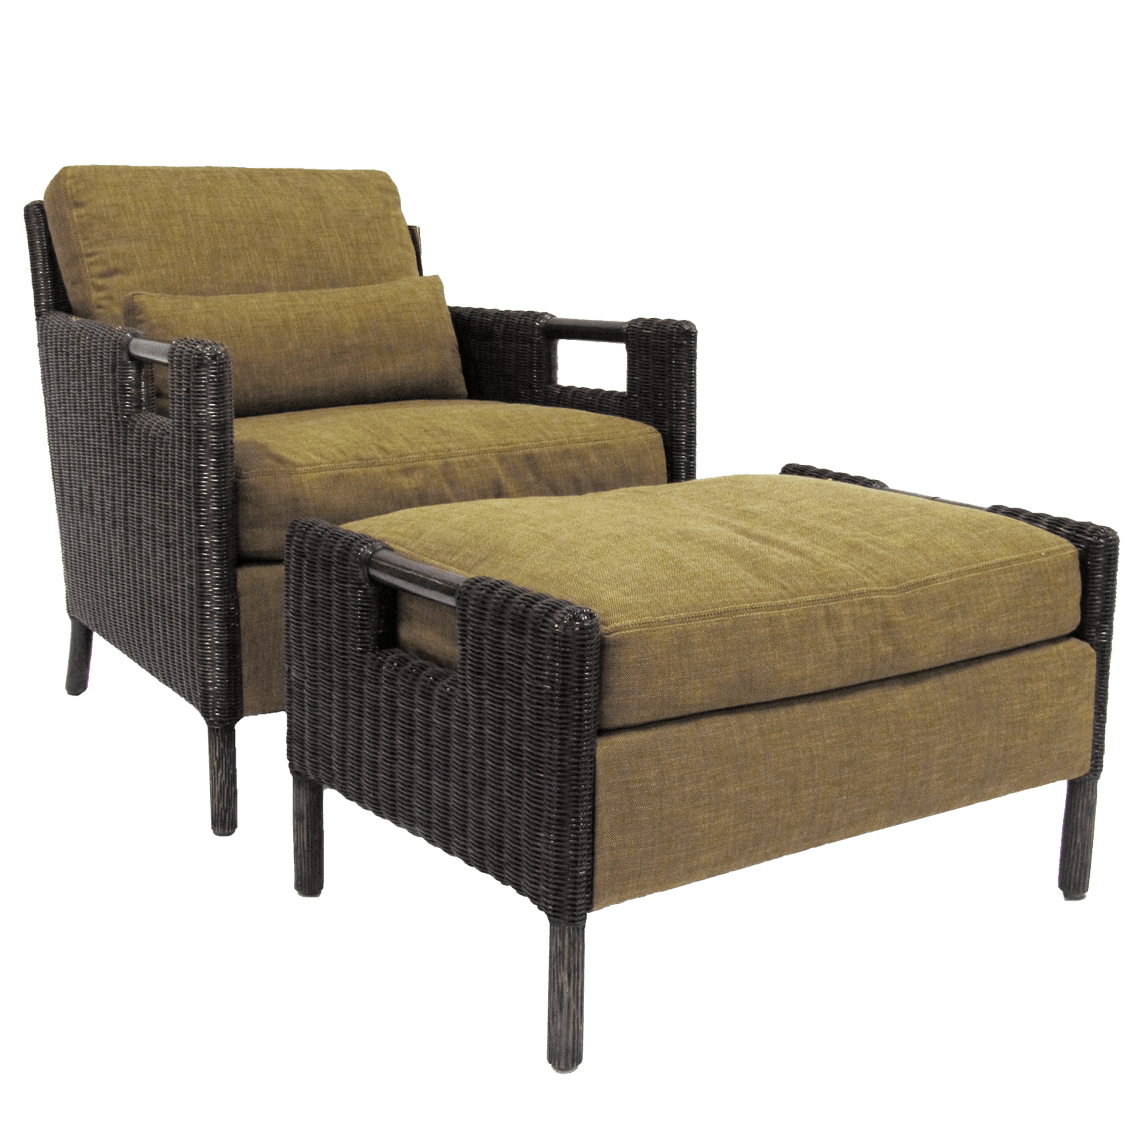 THOMAS PHEASANT WOVEN CORE LOUNGE CHAIR & OTTOMAN